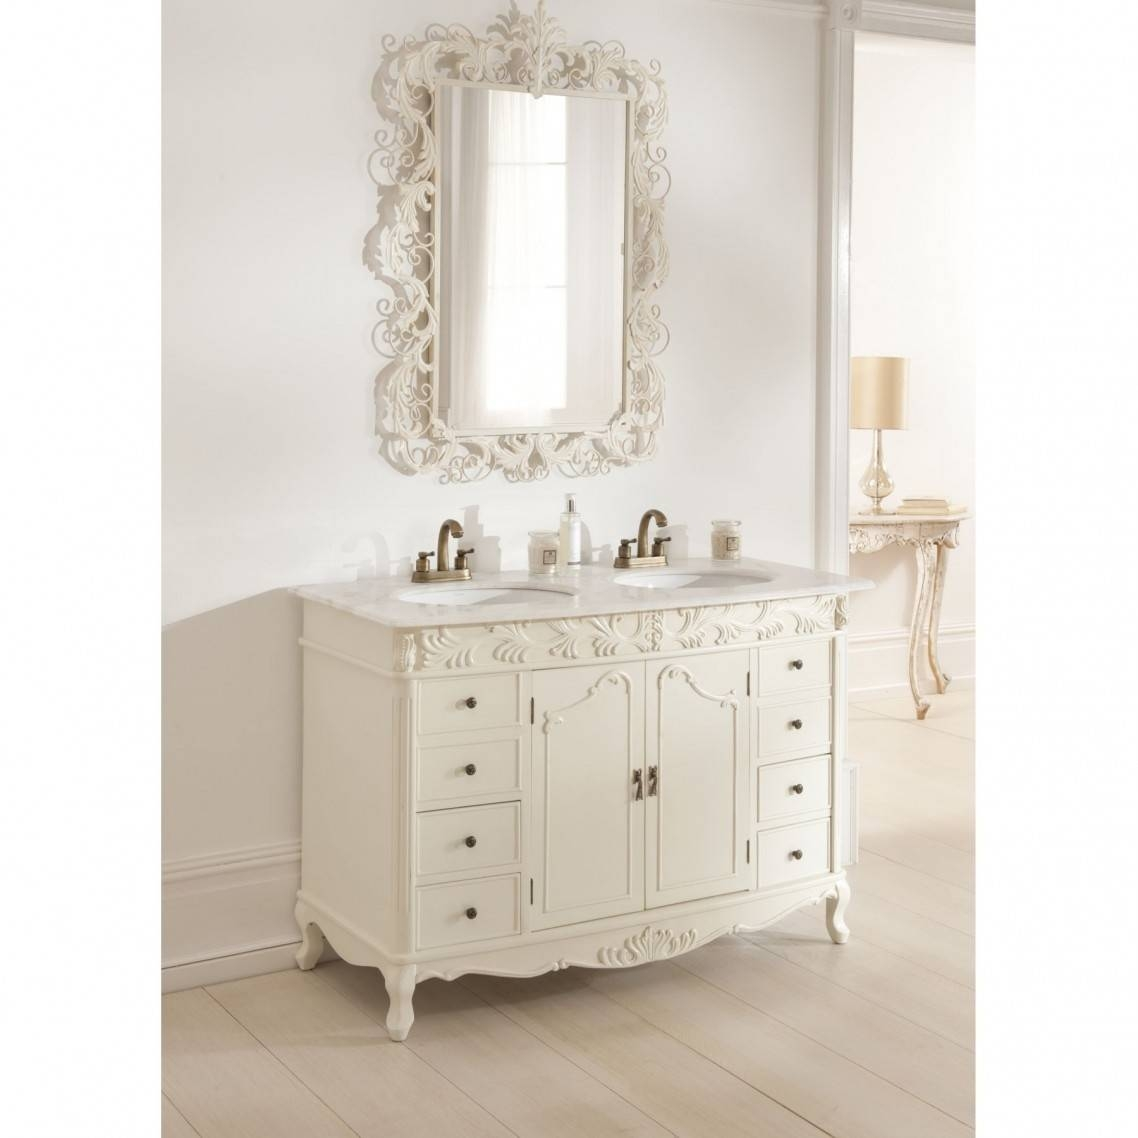 Mirror : French Style Bathroom Mirrors Home With Regard To French Within French Style Bathroom Mirrors (View 7 of 15)